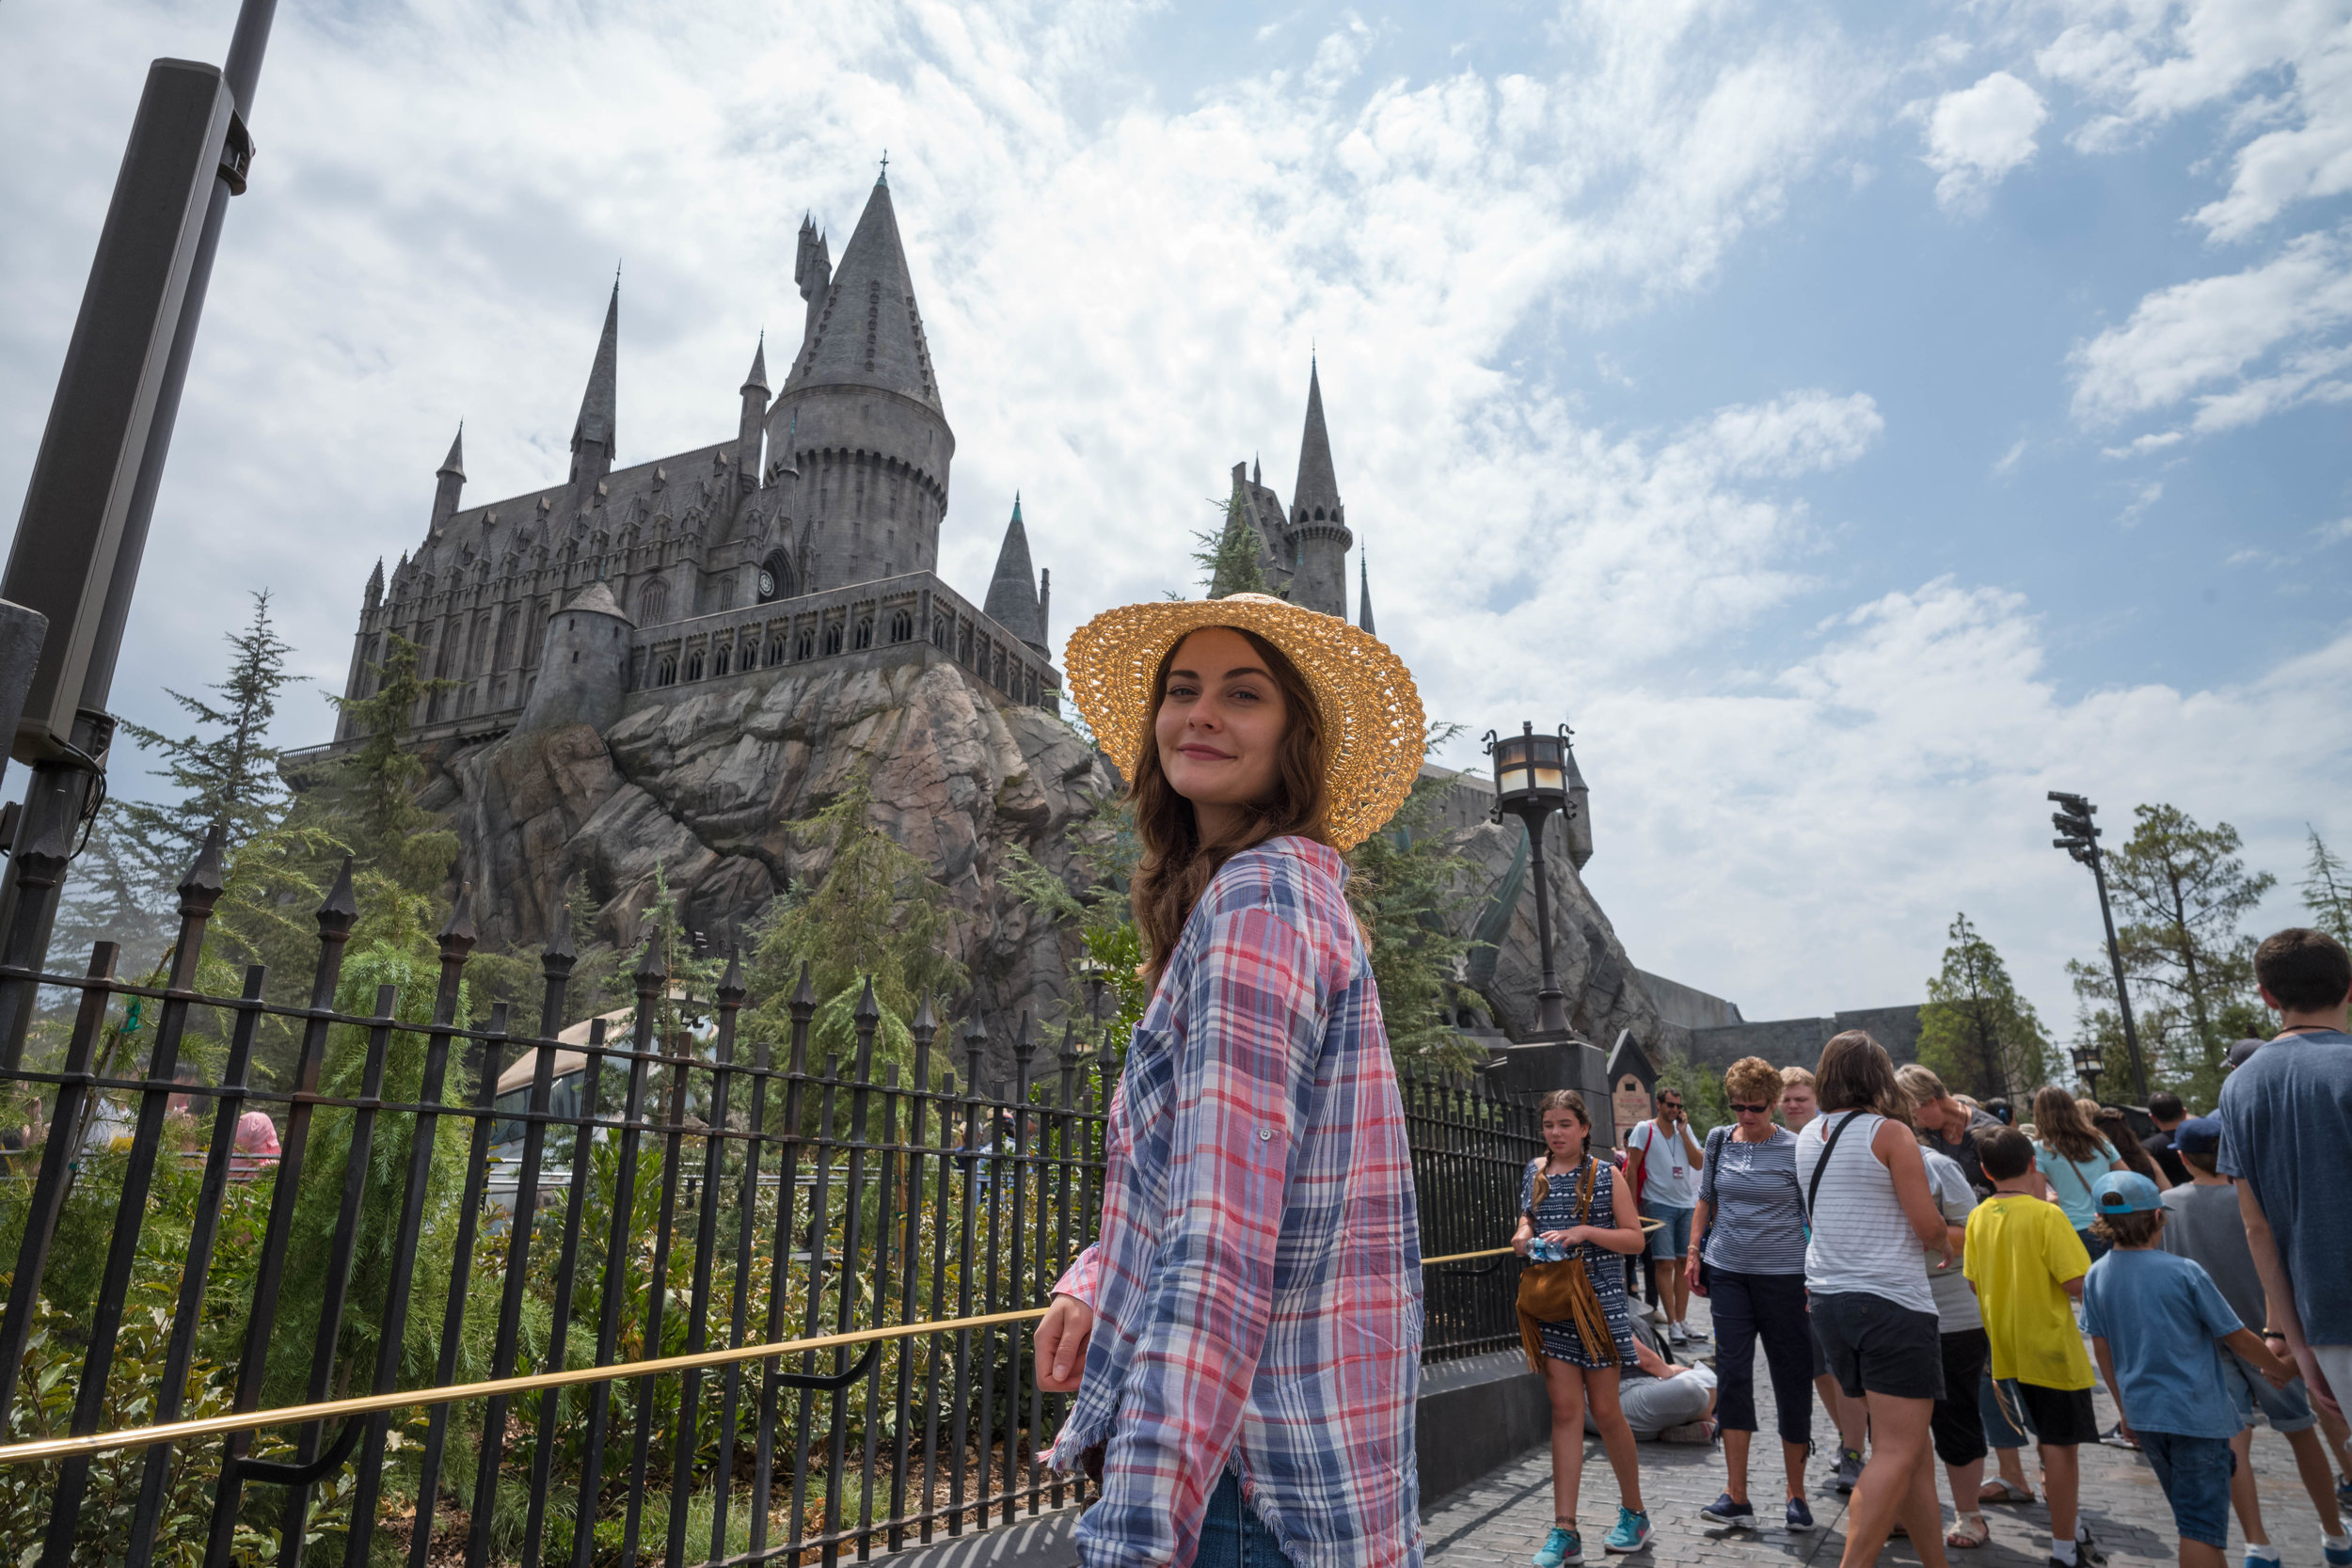 Low angle upward perspective towards Hogwarts - Shot blindly - Leica 21mm f/3.4 Super Elmar ASPH